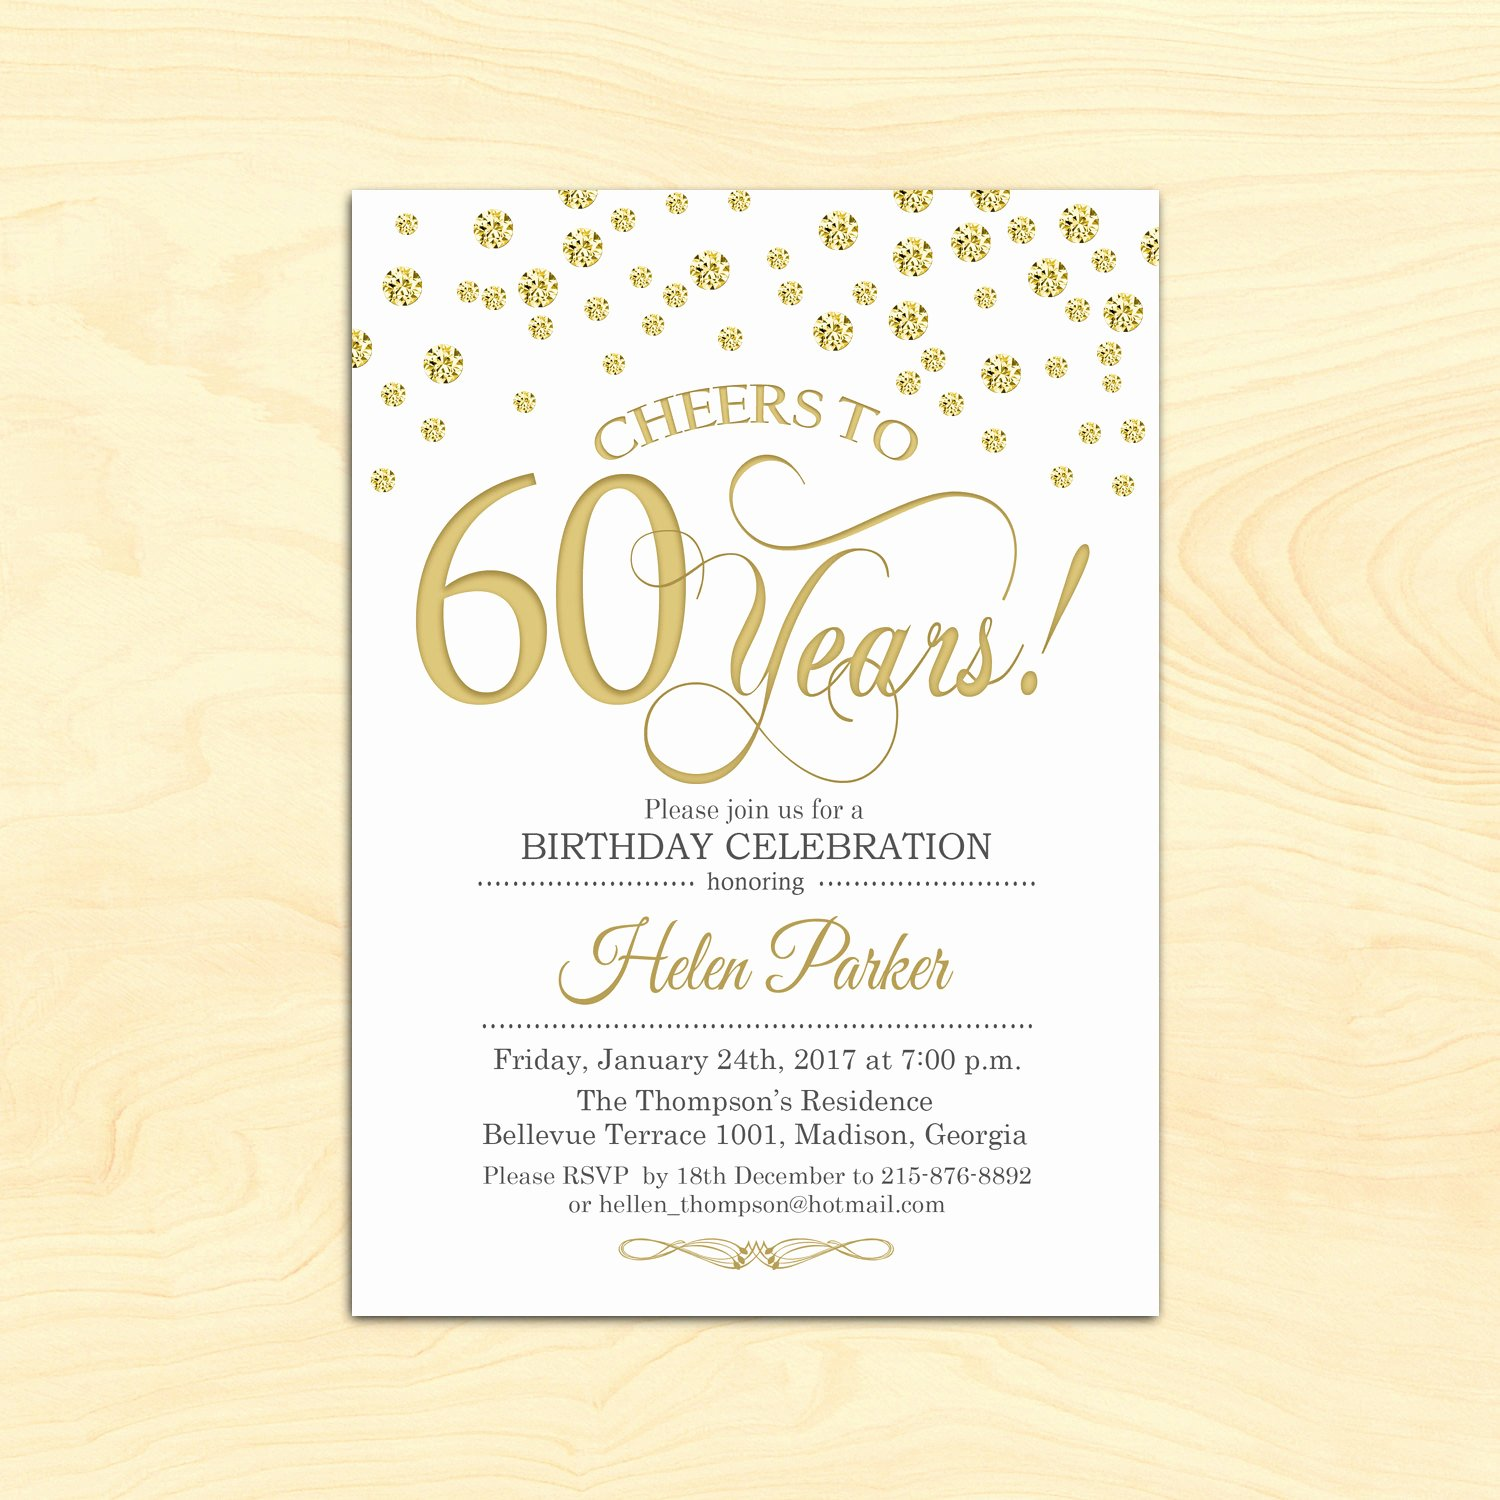 60 Th Birthday Invitation Lovely 60th Birthday Invitation Any Age Cheers to 60 Years Gold